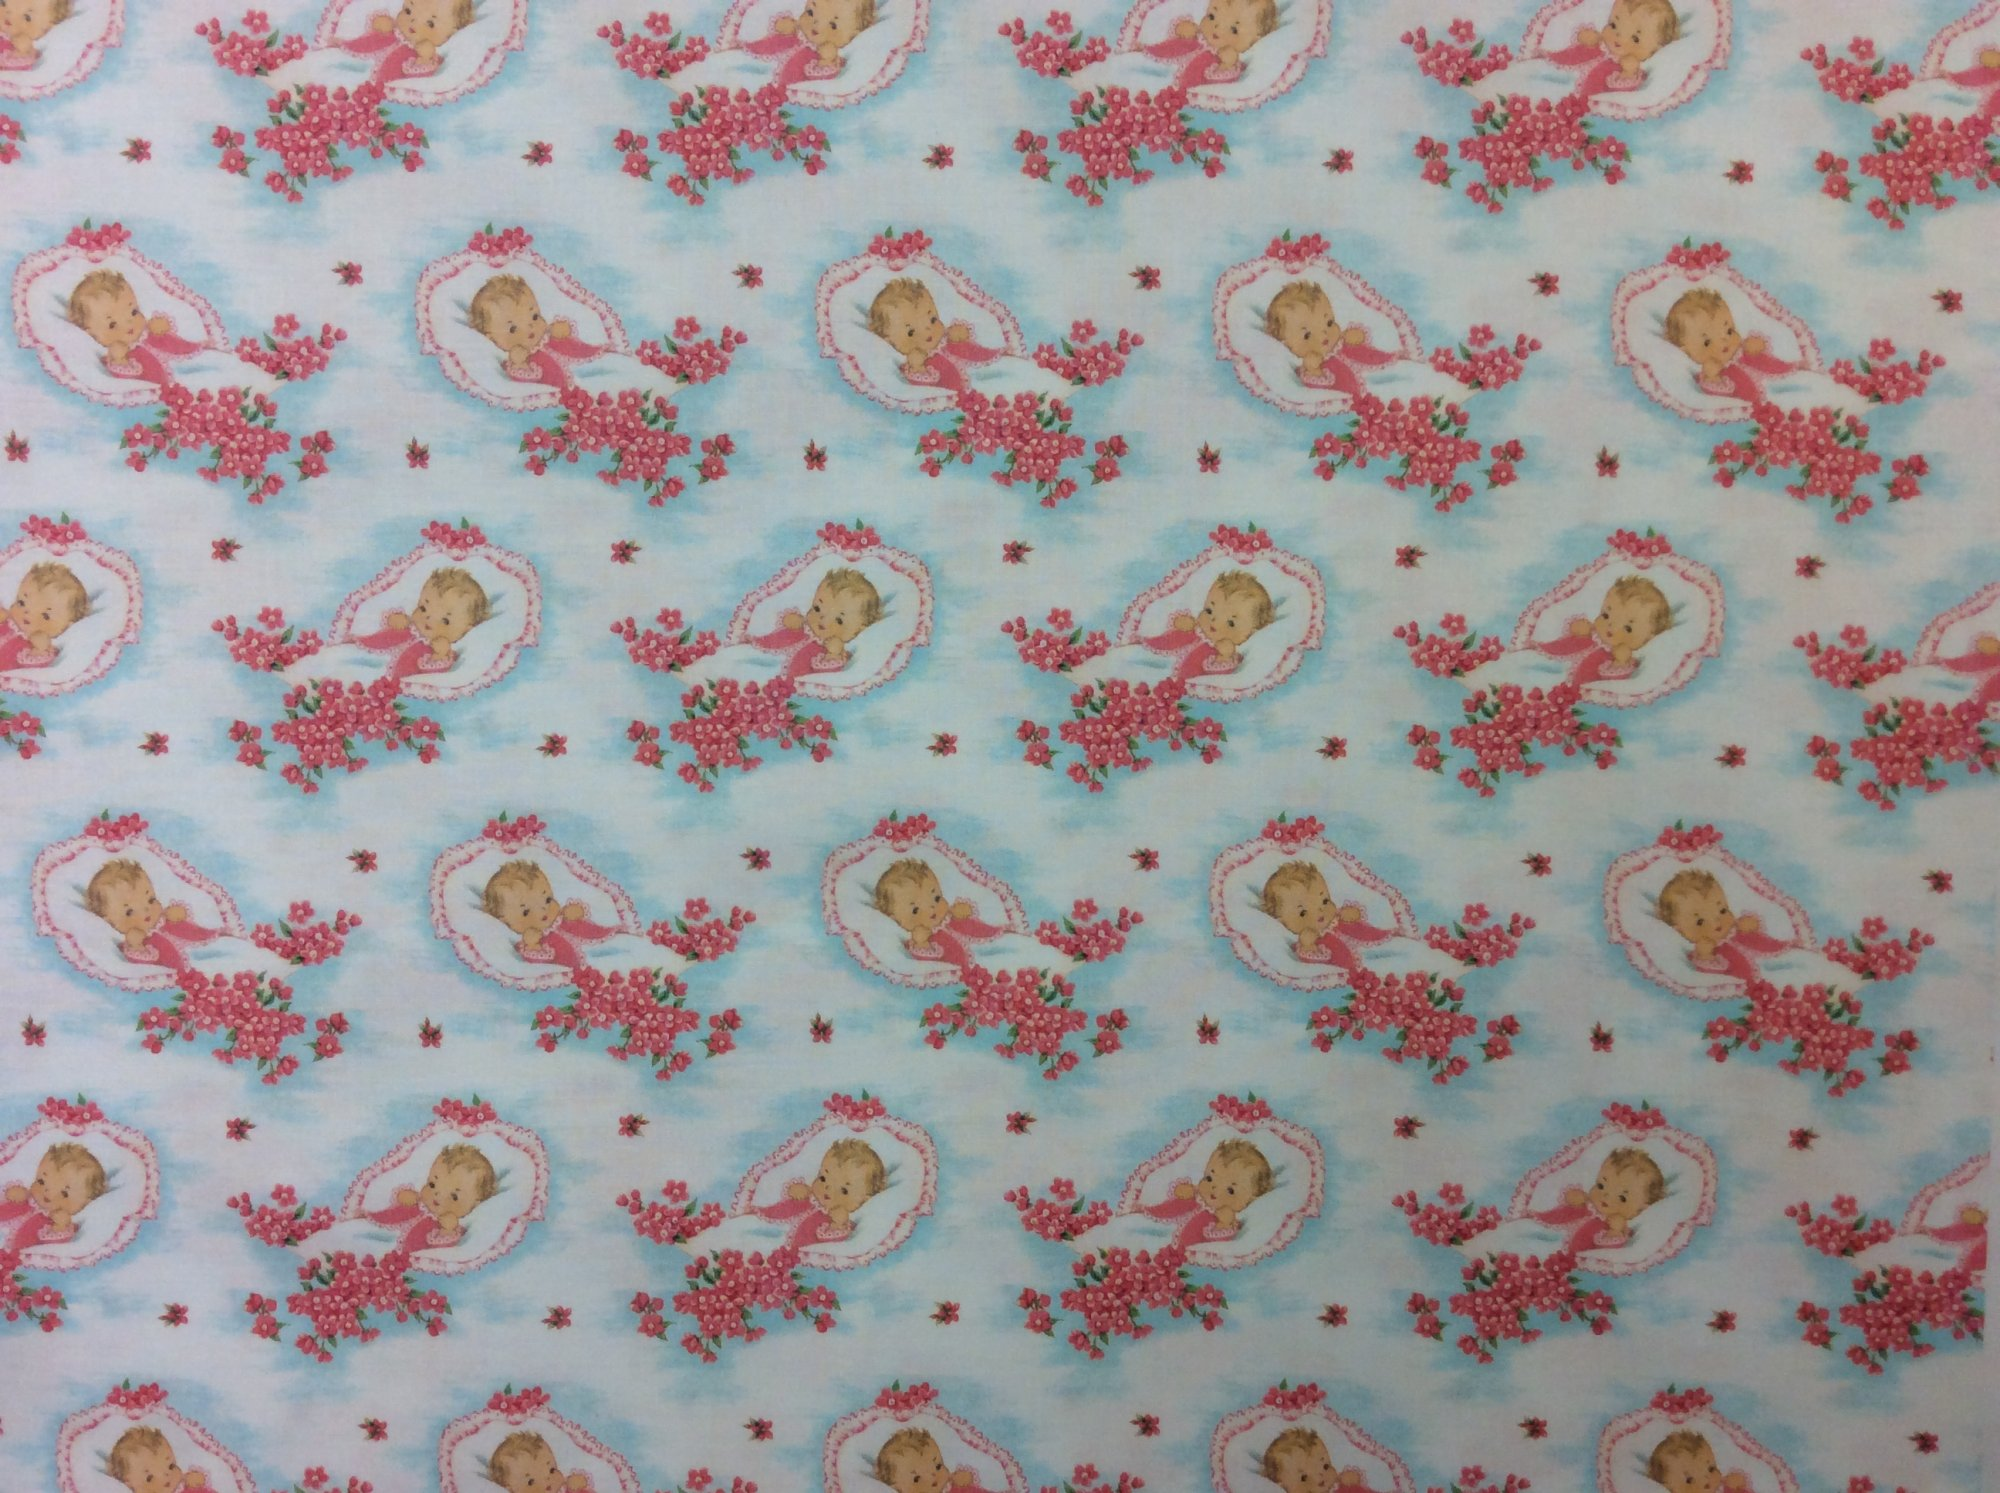 Newborn Baby Retro Wrapping Paper Baby Shower Style Cotton Quilt Fabric NT96